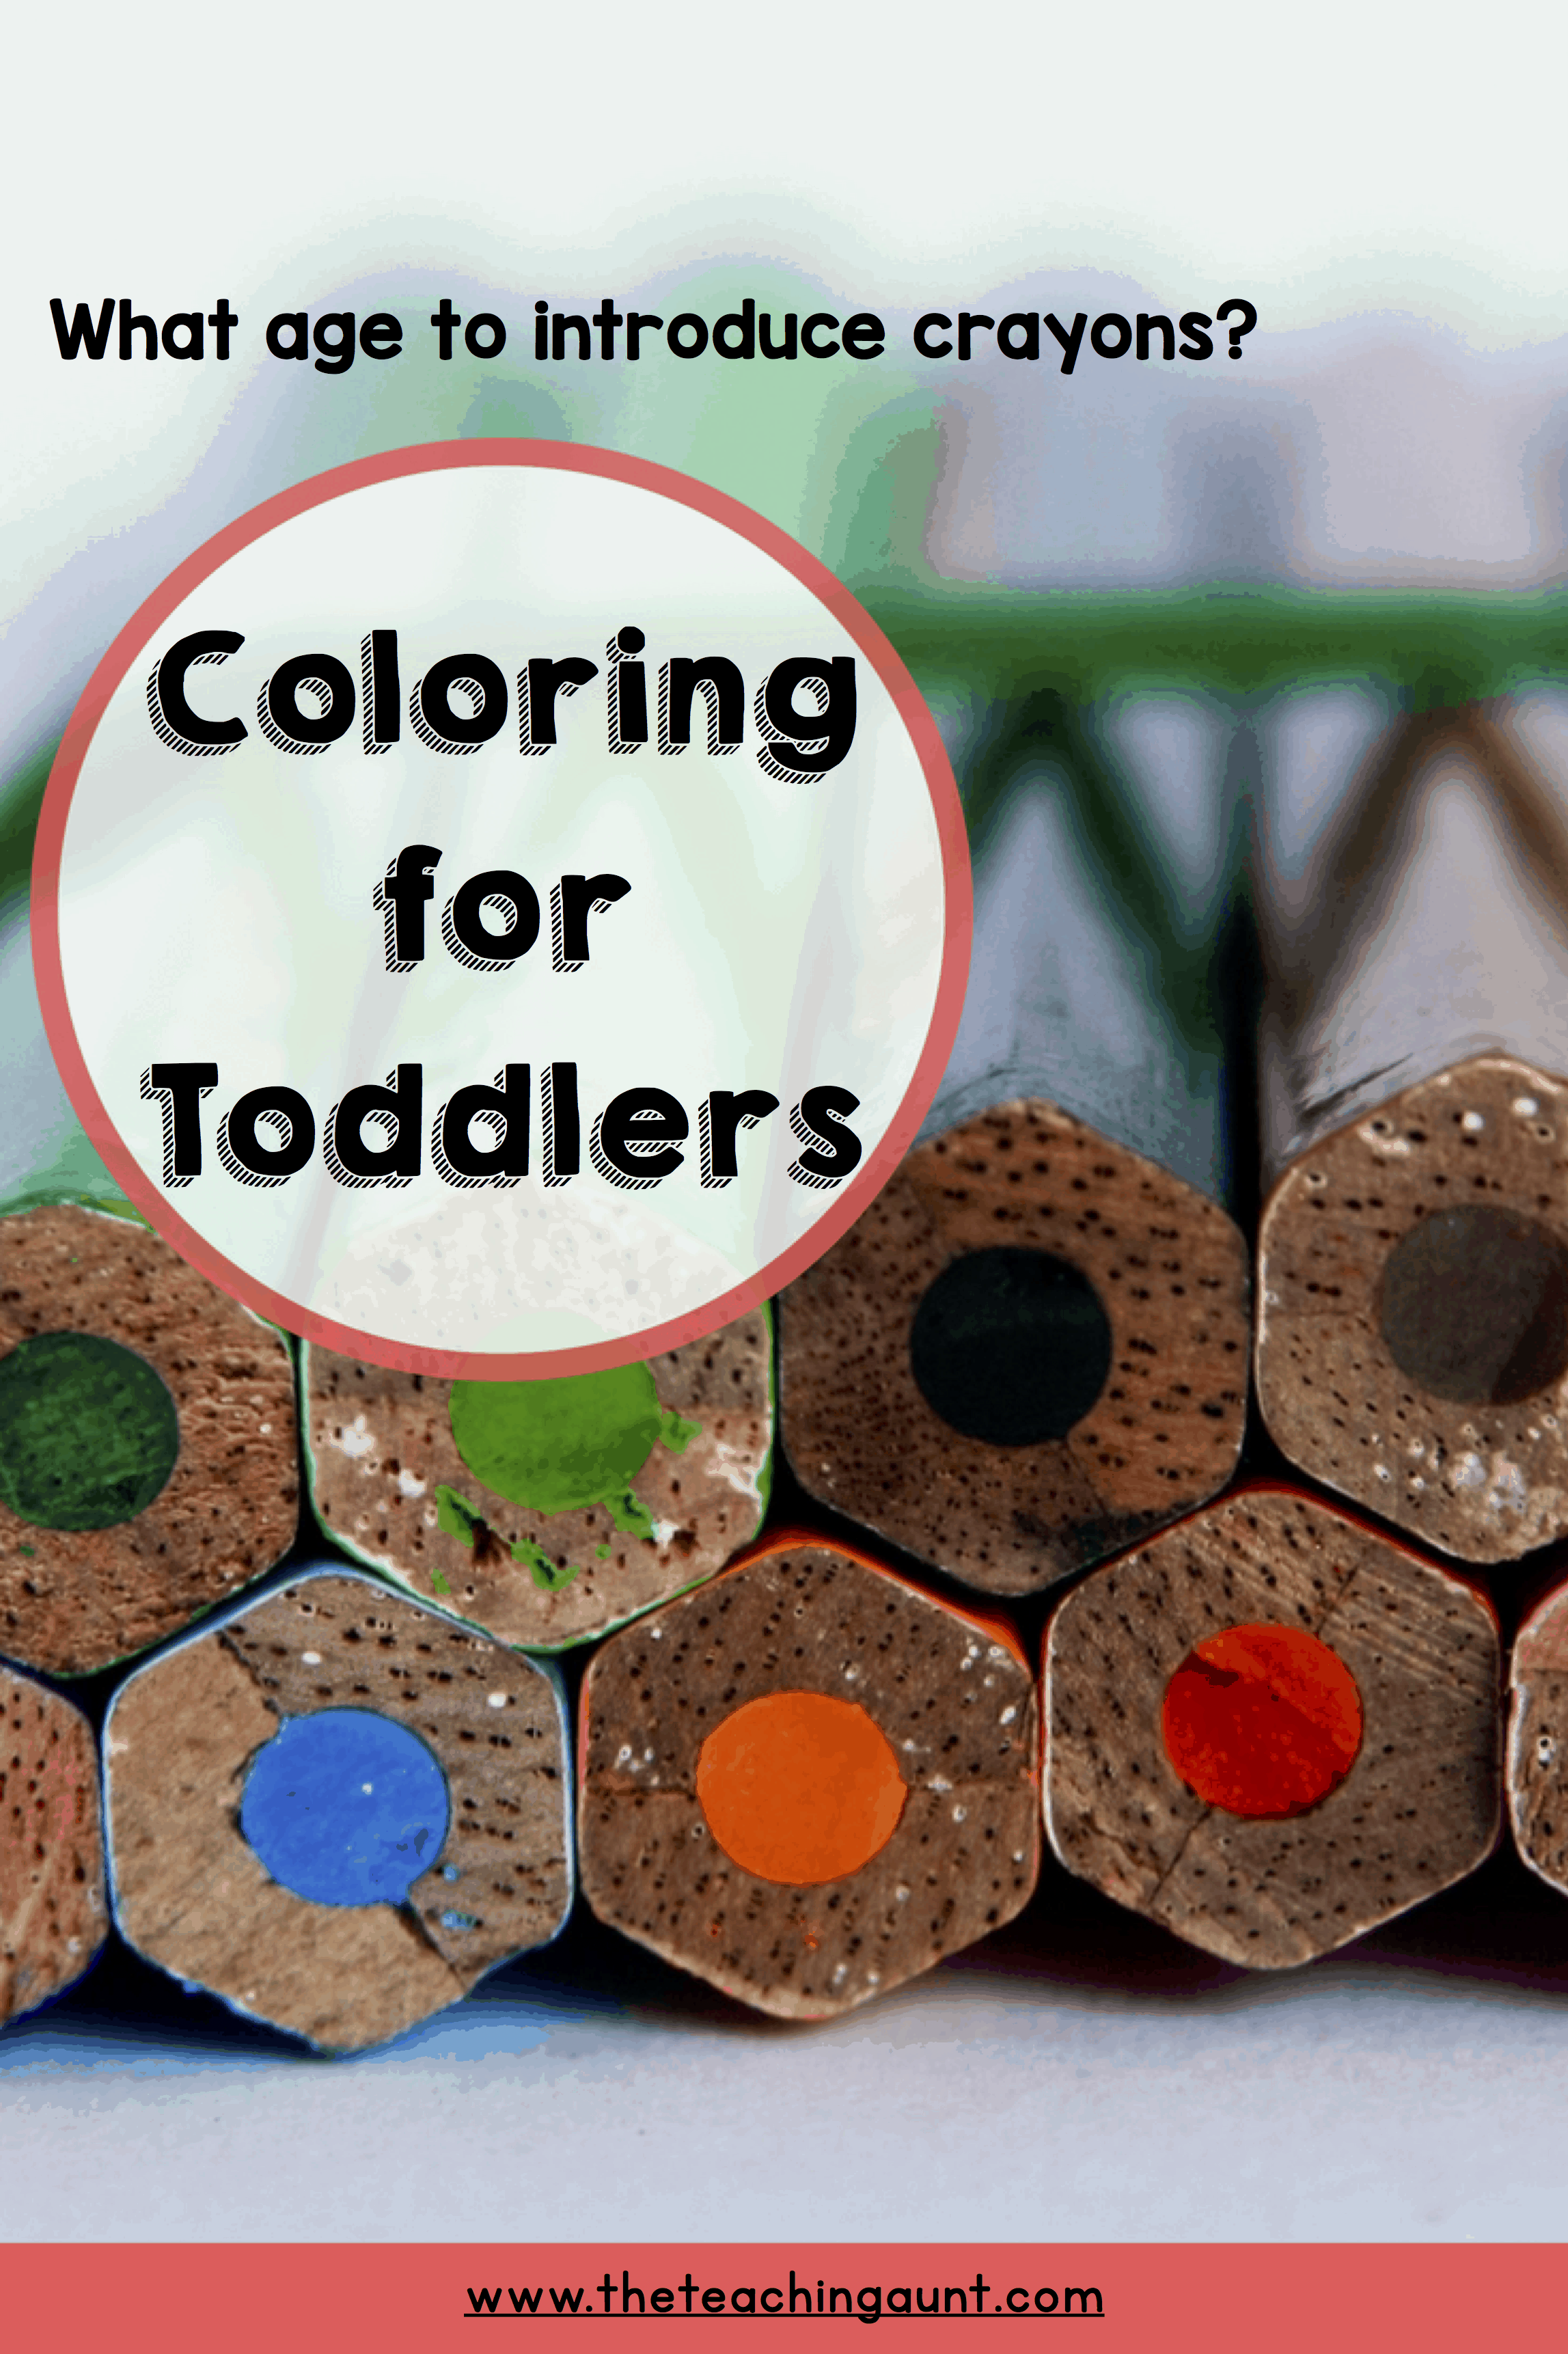 Coloring for Toddlers: What Age To Introduce Crayons?